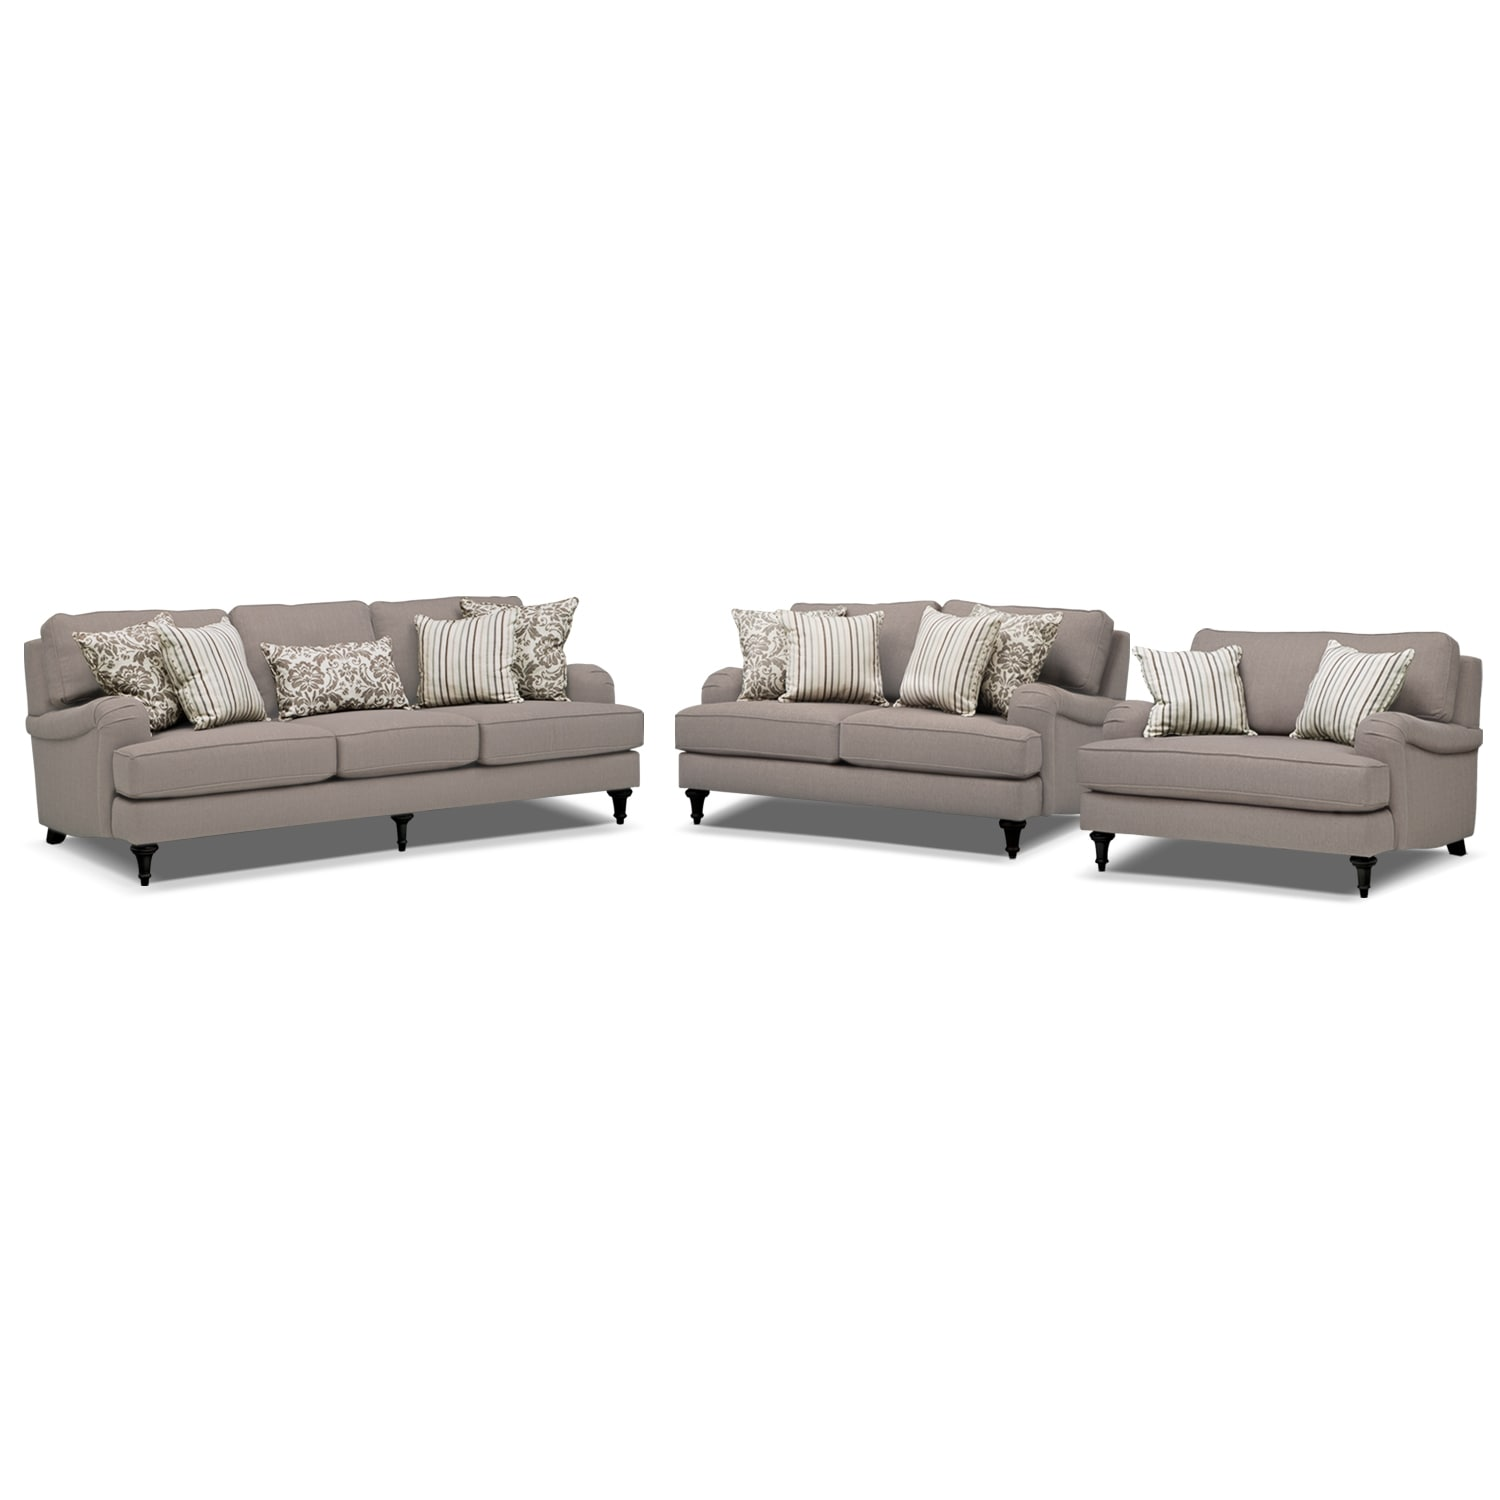 loveseat and chair a half toddlers rocking candice sofa set gray